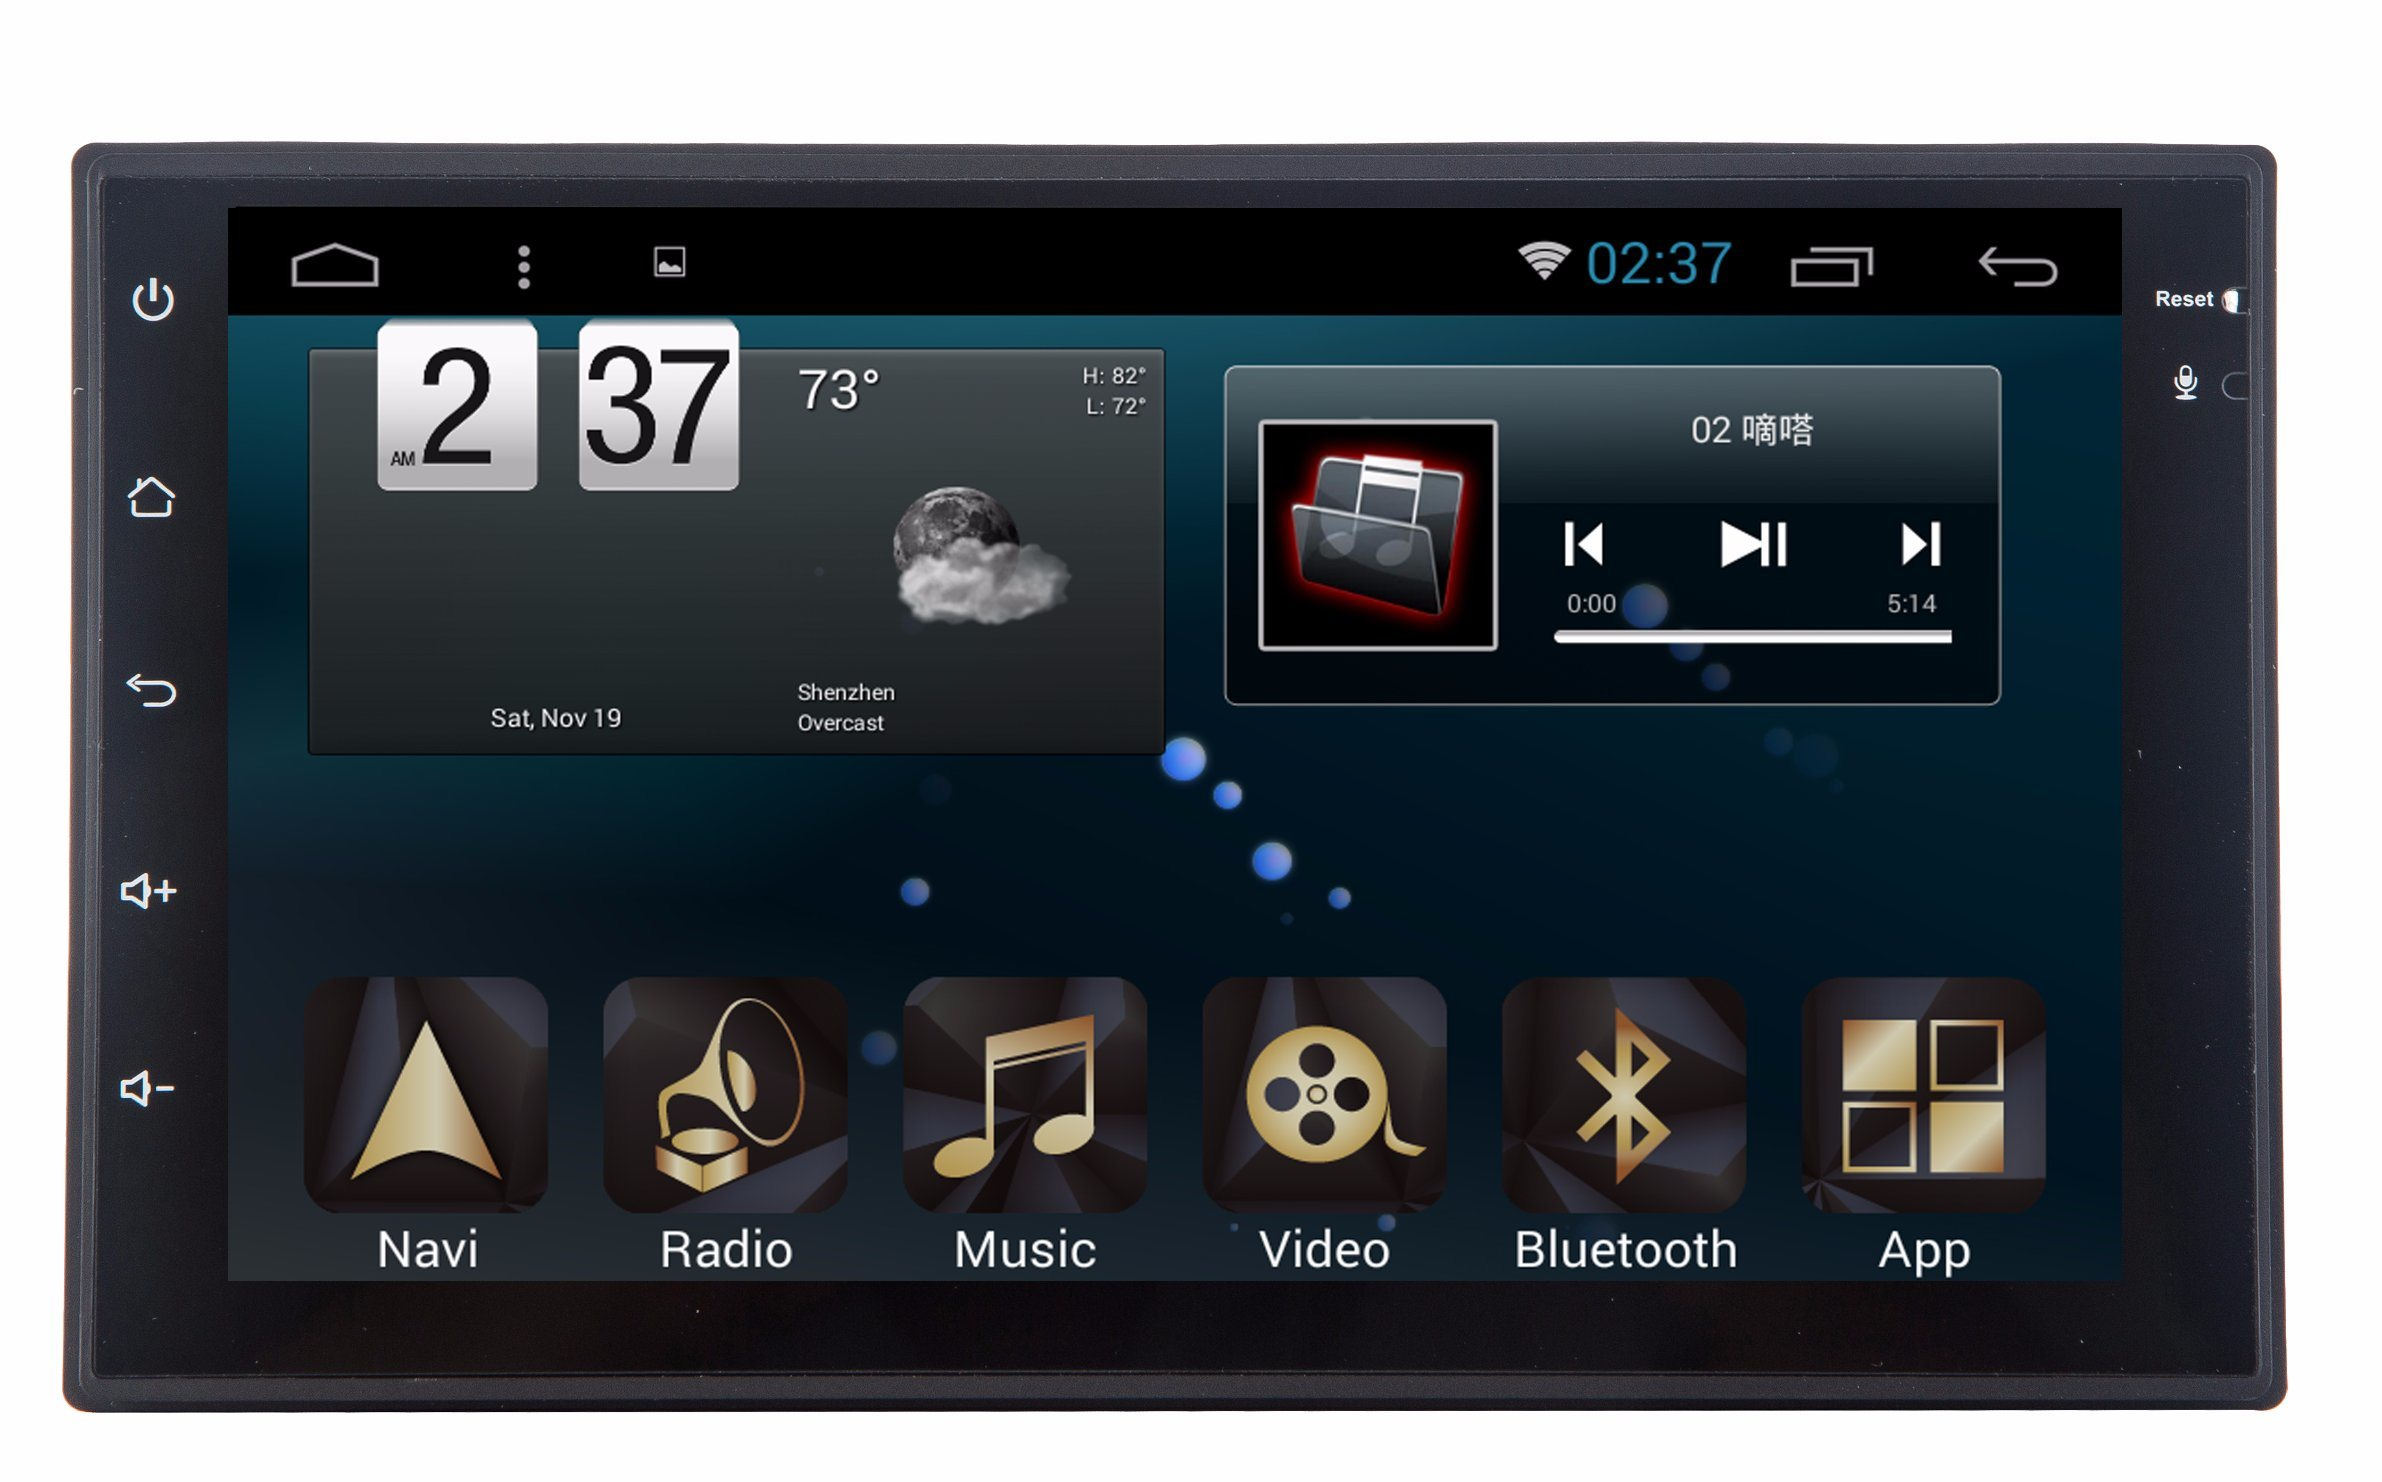 New Ui Android 6.0 Car Accessories for Universal 7 Inch with Car GPS Navigation